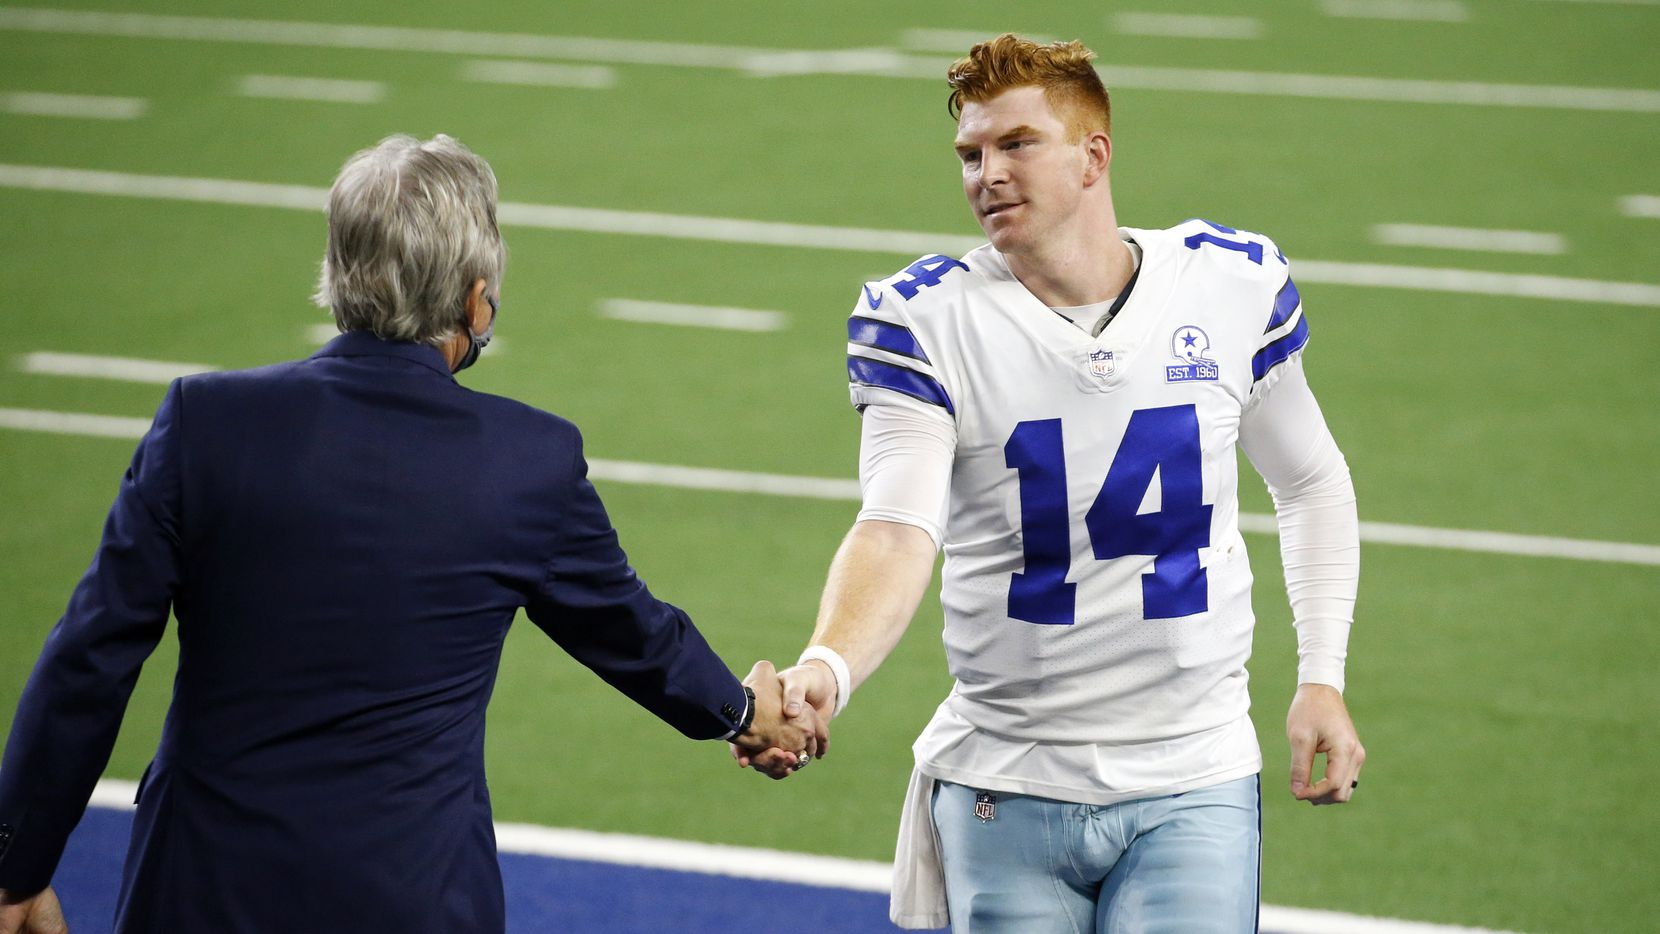 Dallas Cowboys quarterback Andy Dalton (14) receives congratulations on the teams win over the New York Giants at AT&T Stadium Stadium in Arlington, Texas, Sunday, October 11, 2020.